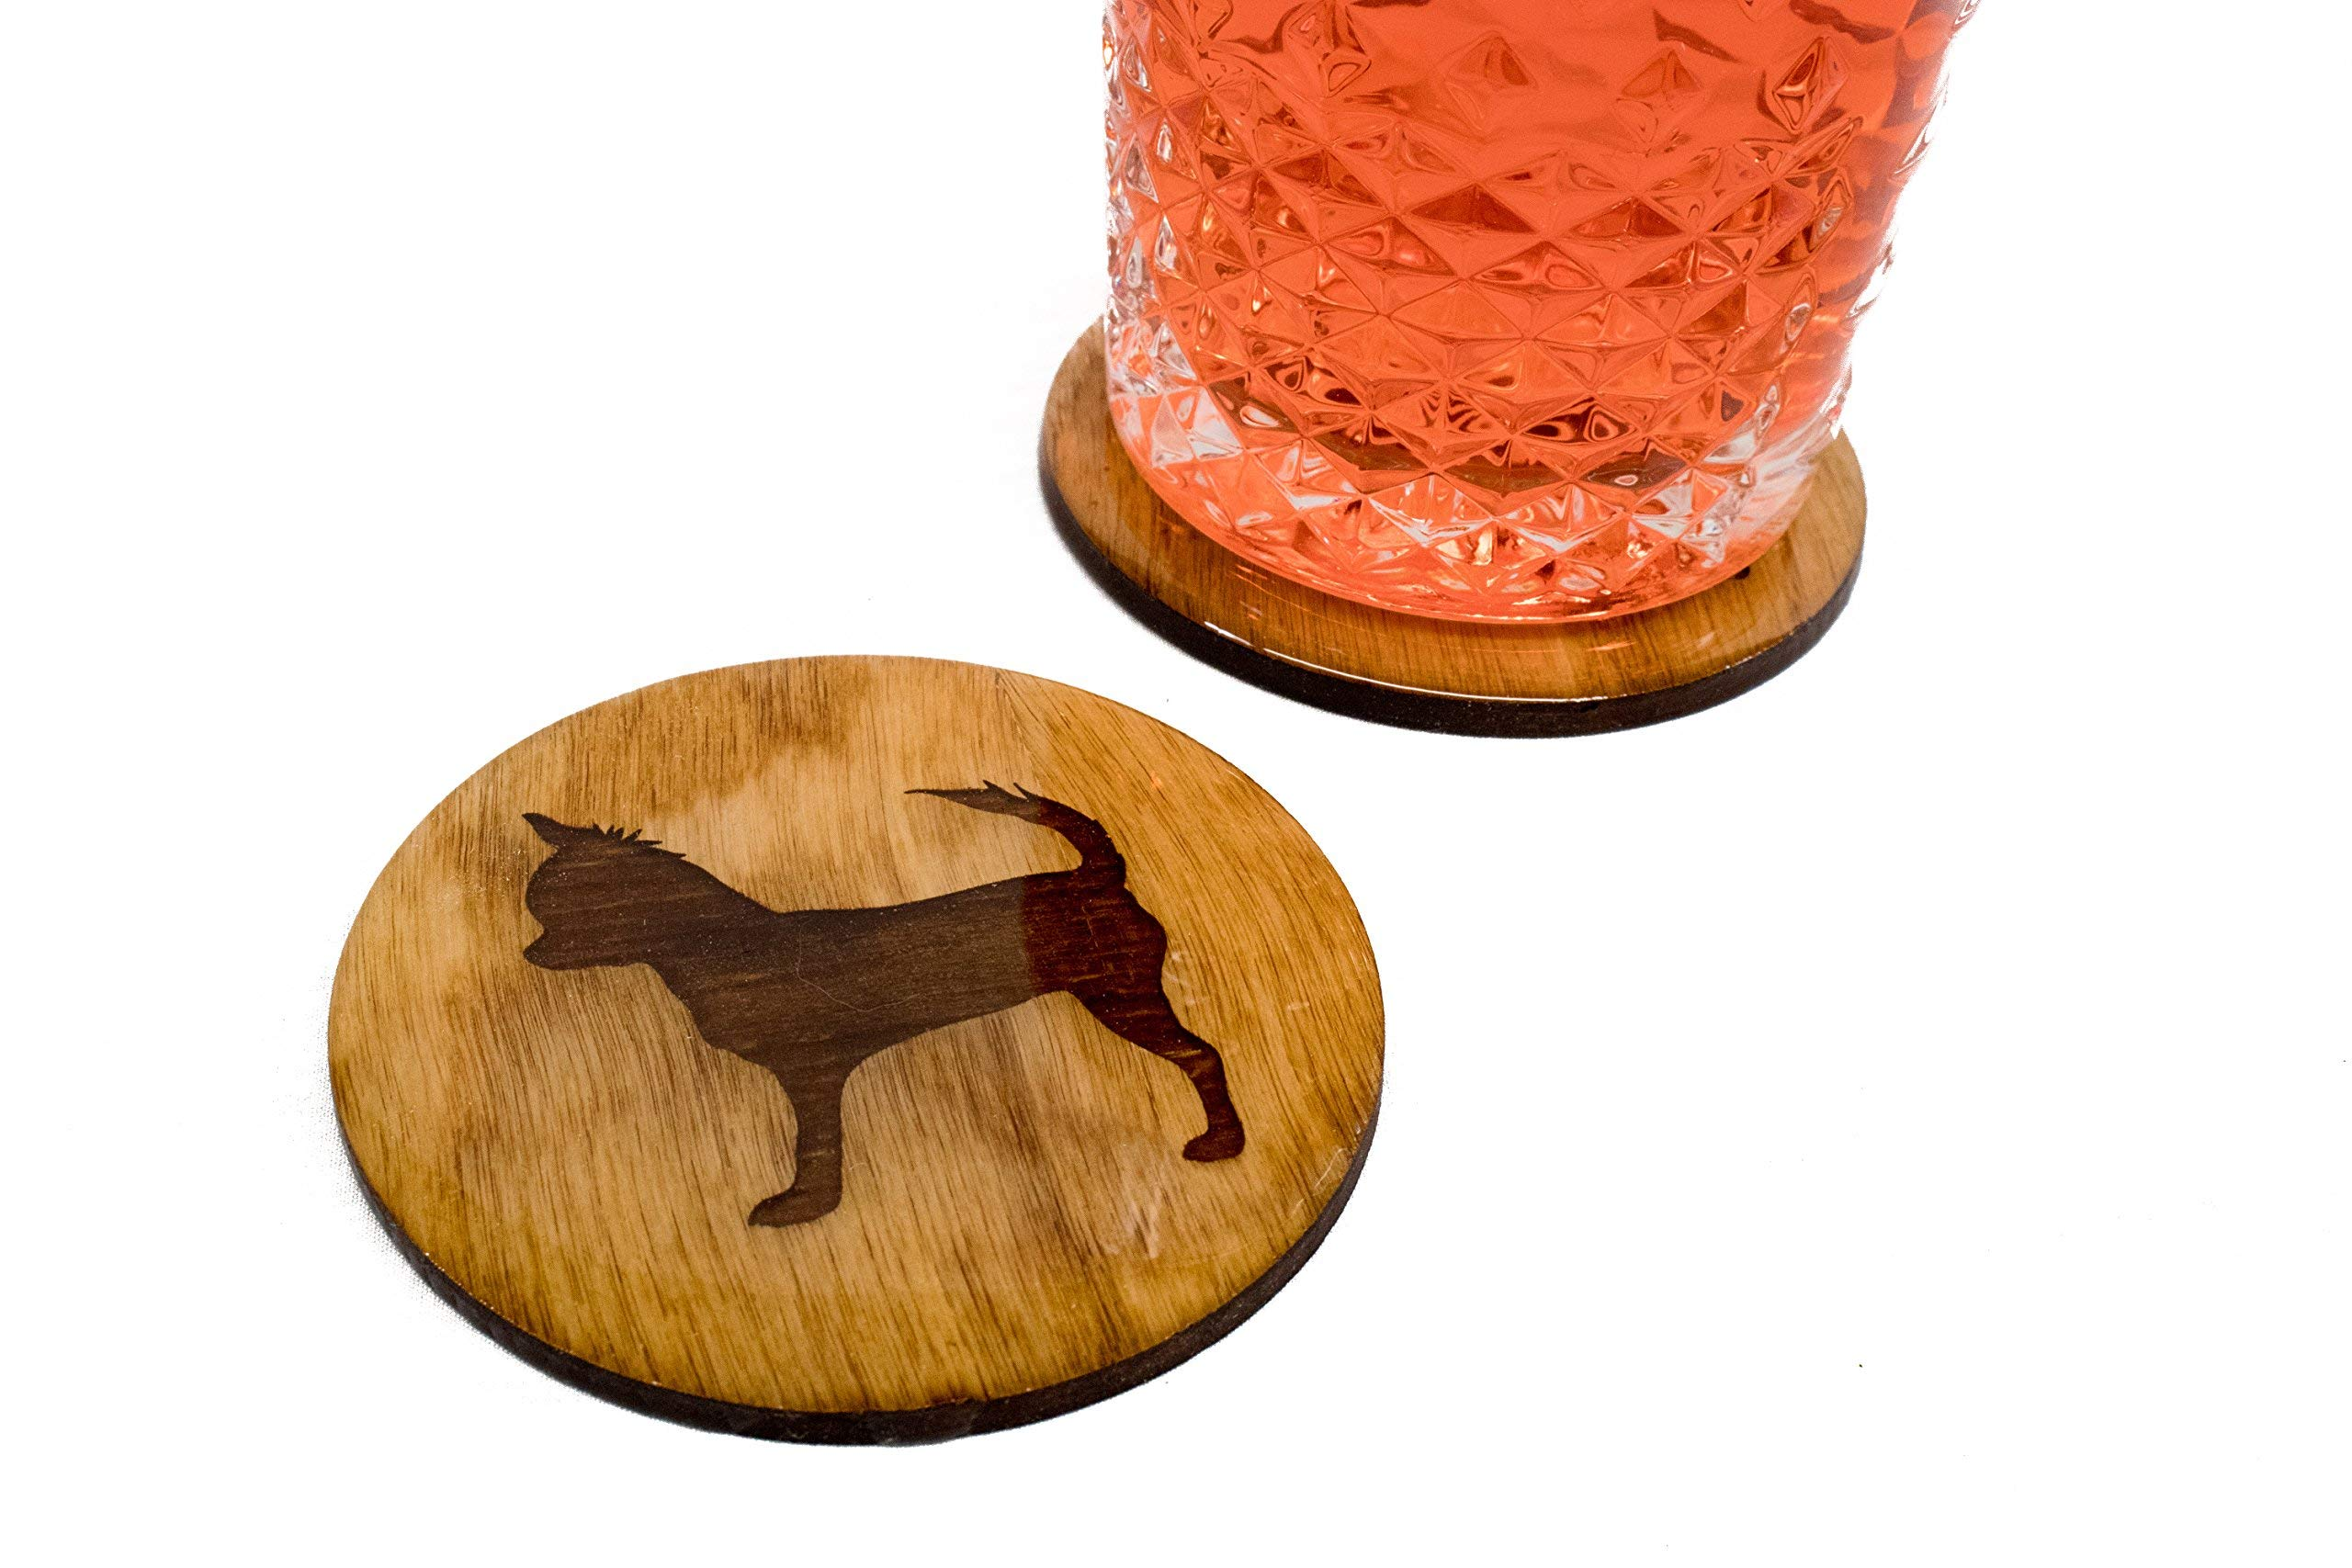 Premium Chihuahua Coasters - 4 Quality Handmade Engraved 3.5'' Round Wooden Natural Home Dog Lover by 1337 Shady Studios